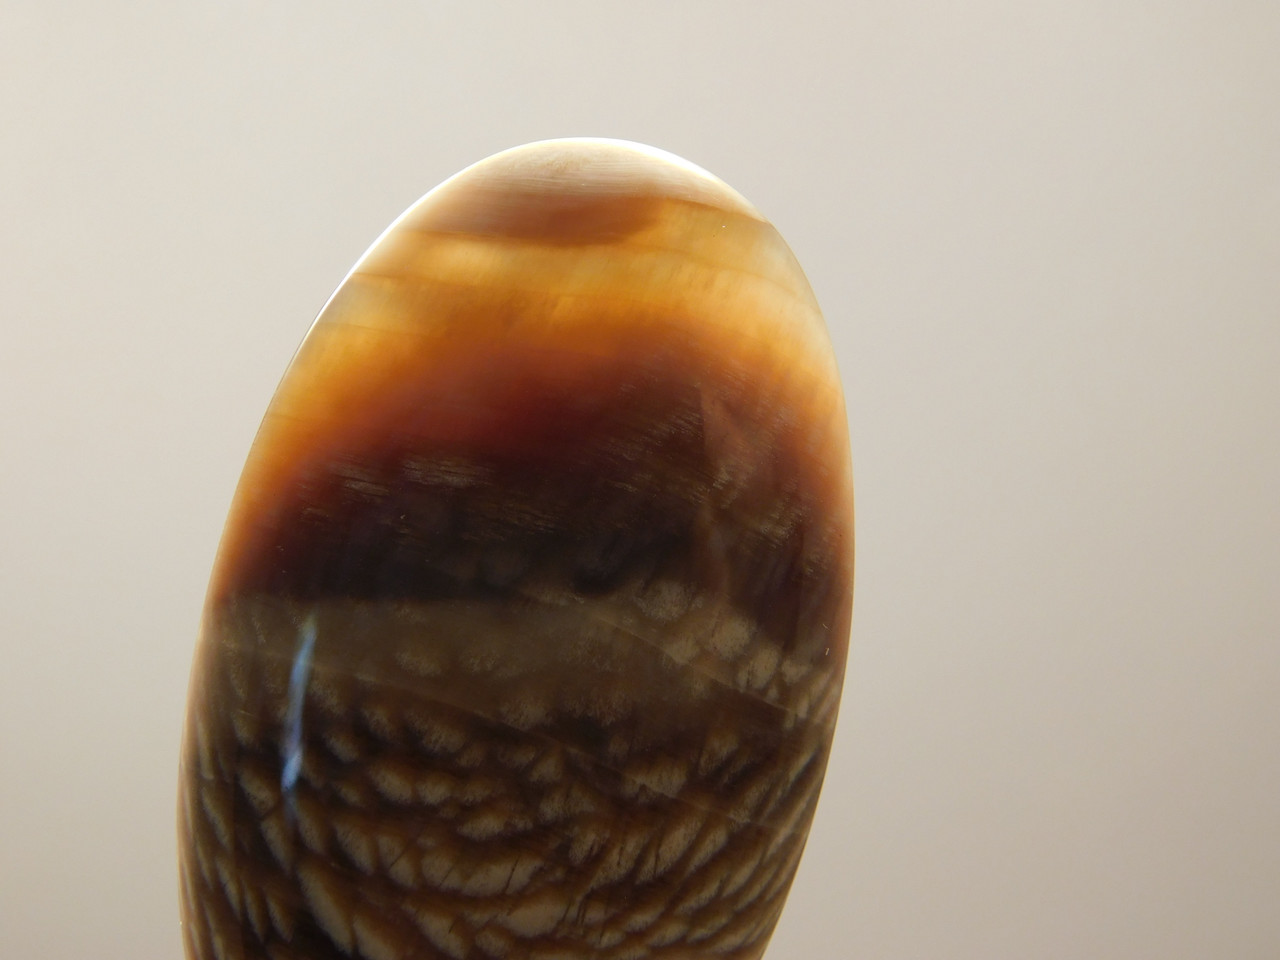 Fossil Wood Oval Cabochons for Jewelry Making Supplies #11